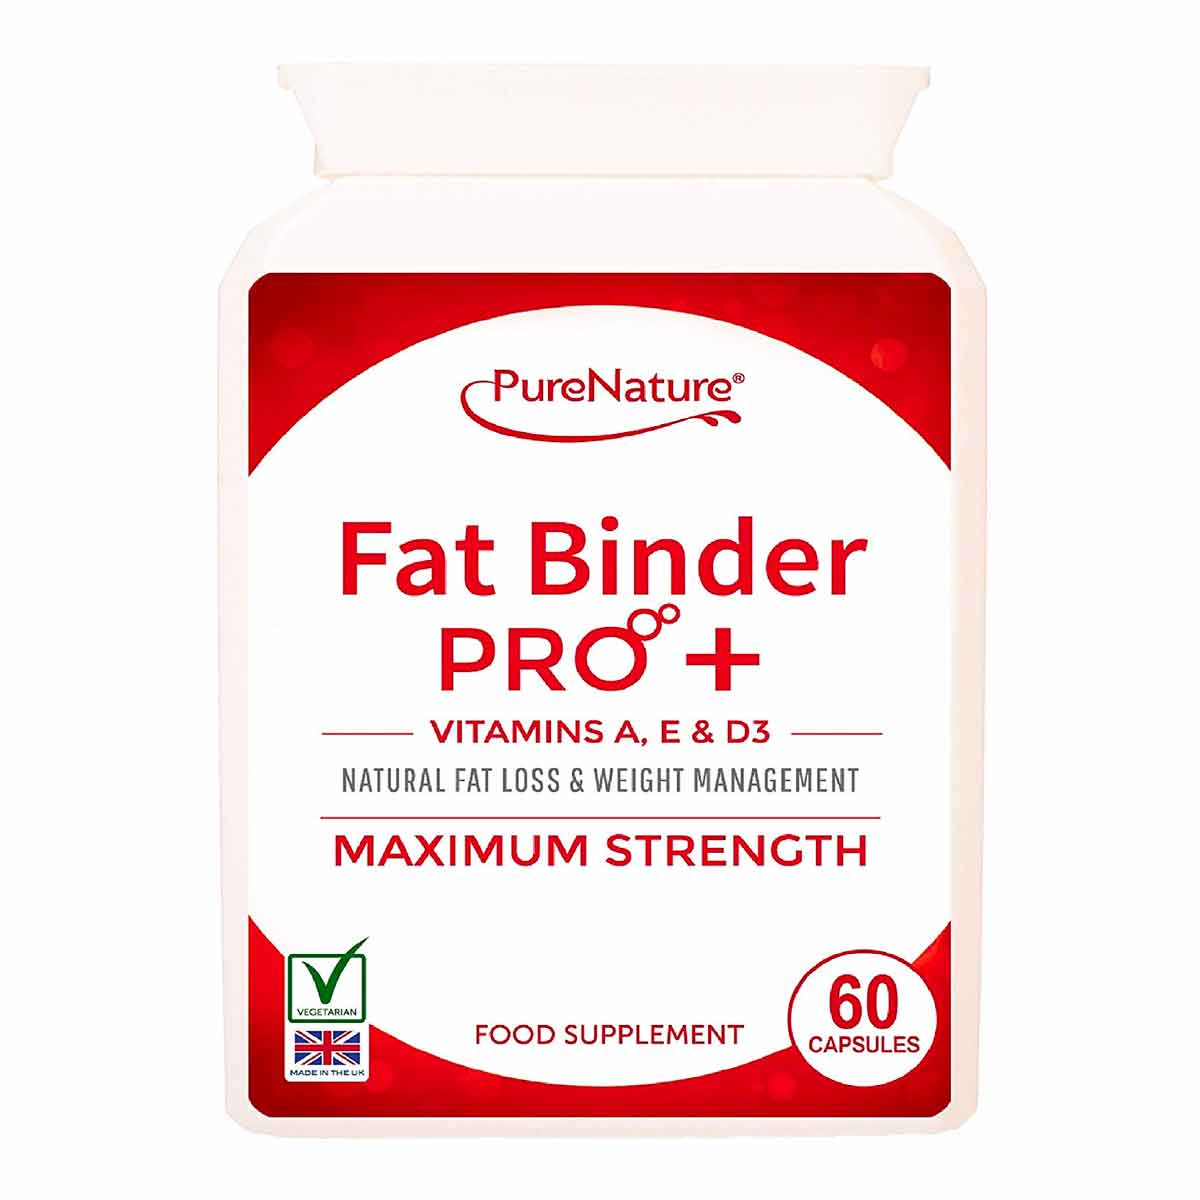 Pure Nature Fat Binder Pro+